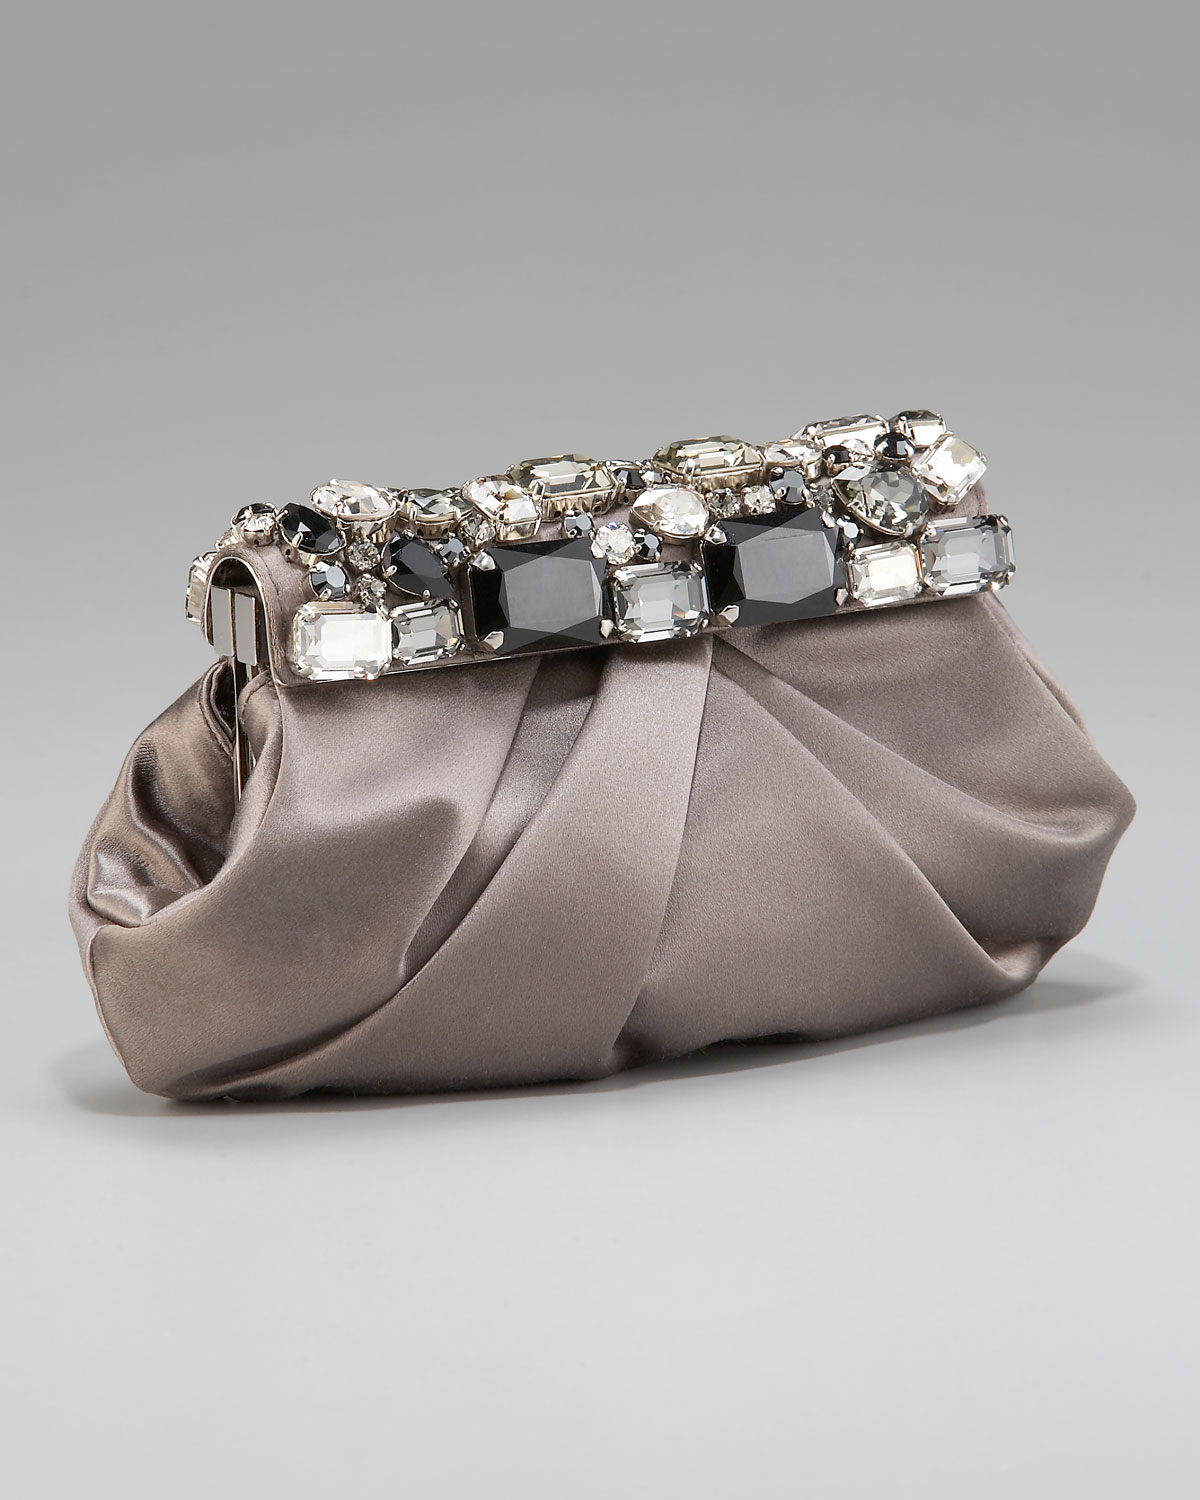 prada handbag - Prada Raso Stones Satin Frame Clutch in Gray (brown taupe) | Lyst